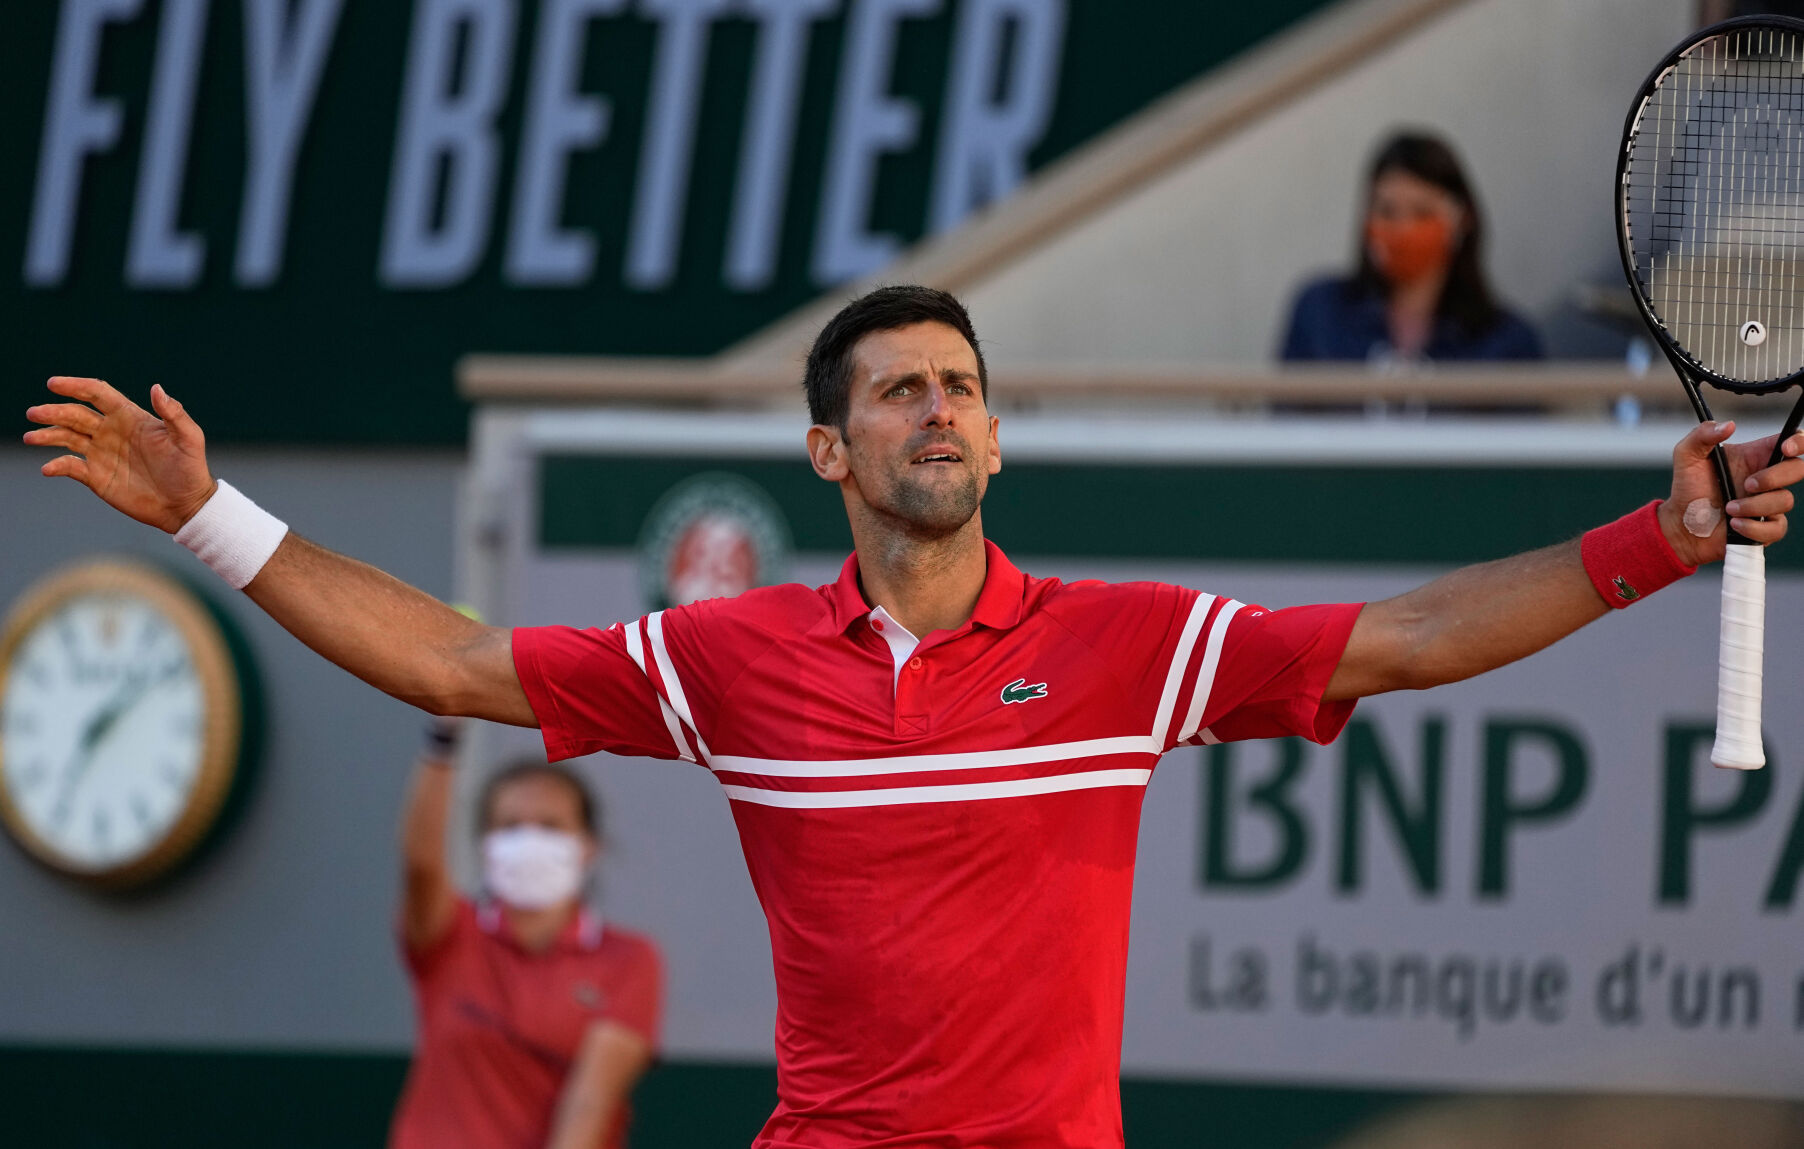 <p>Serbia's Novak Djokovic reacts after winning a point against Stefanos Tsitsipas of Greece in the men's final of the French Open tennis tournament Sunday in Paris.</p>